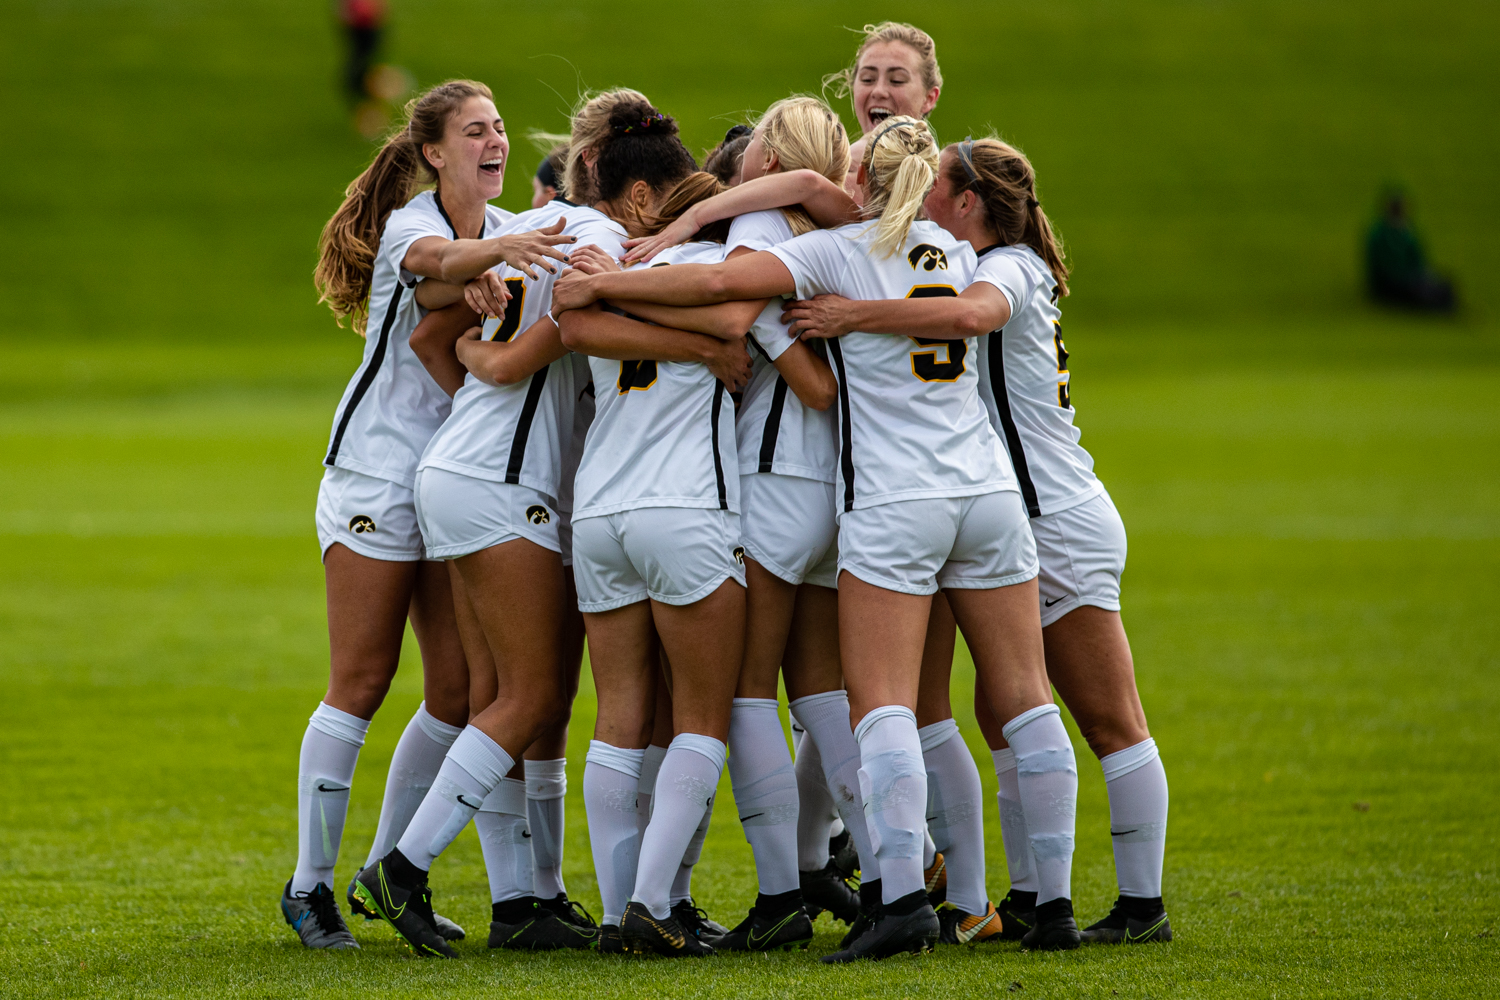 Iowa players celebrate a goal during a women's soccer match between Iowa and Maryland at the Iowa Soccer Complex on Sunday, October 13, 2019. The Hawkeyes shut out the Terrapins, 4-0.